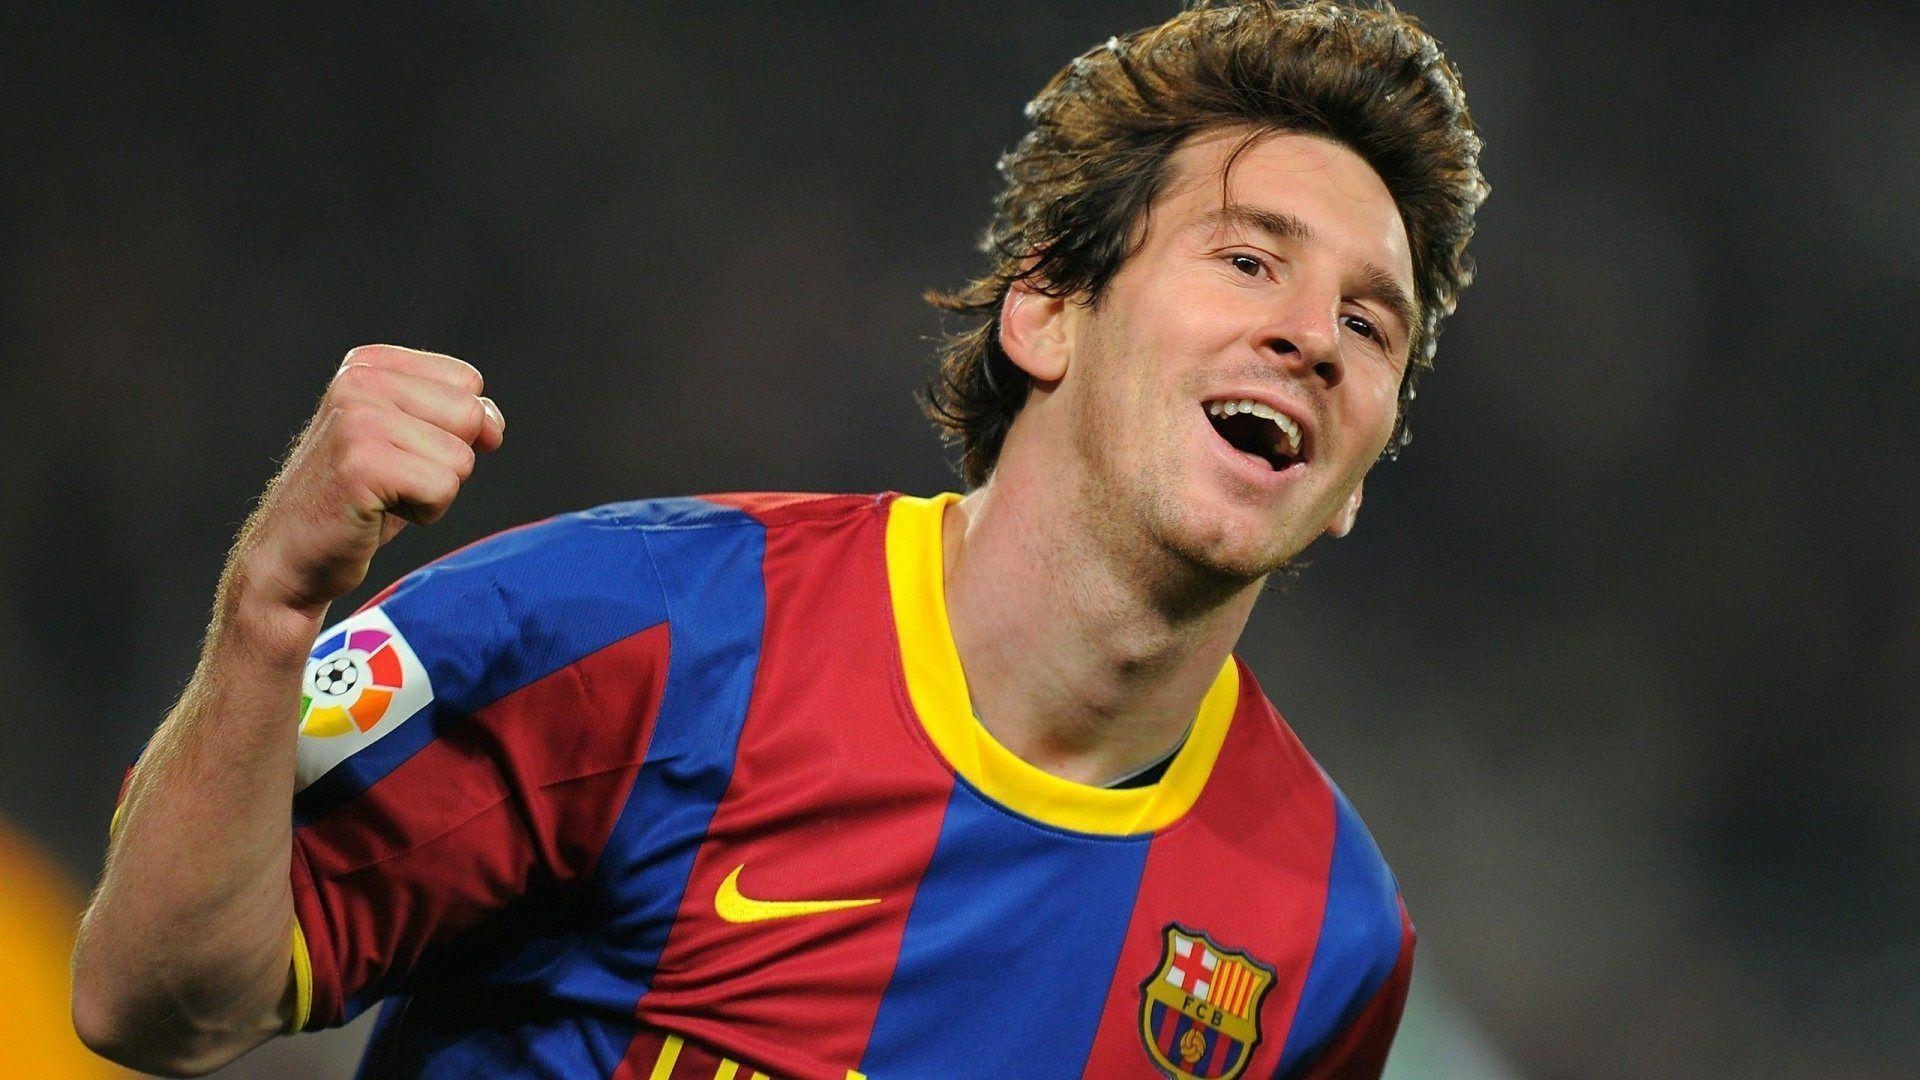 Messi 2012 - Messi hd - Messi wallpaper - Messi image hd - Messi ...